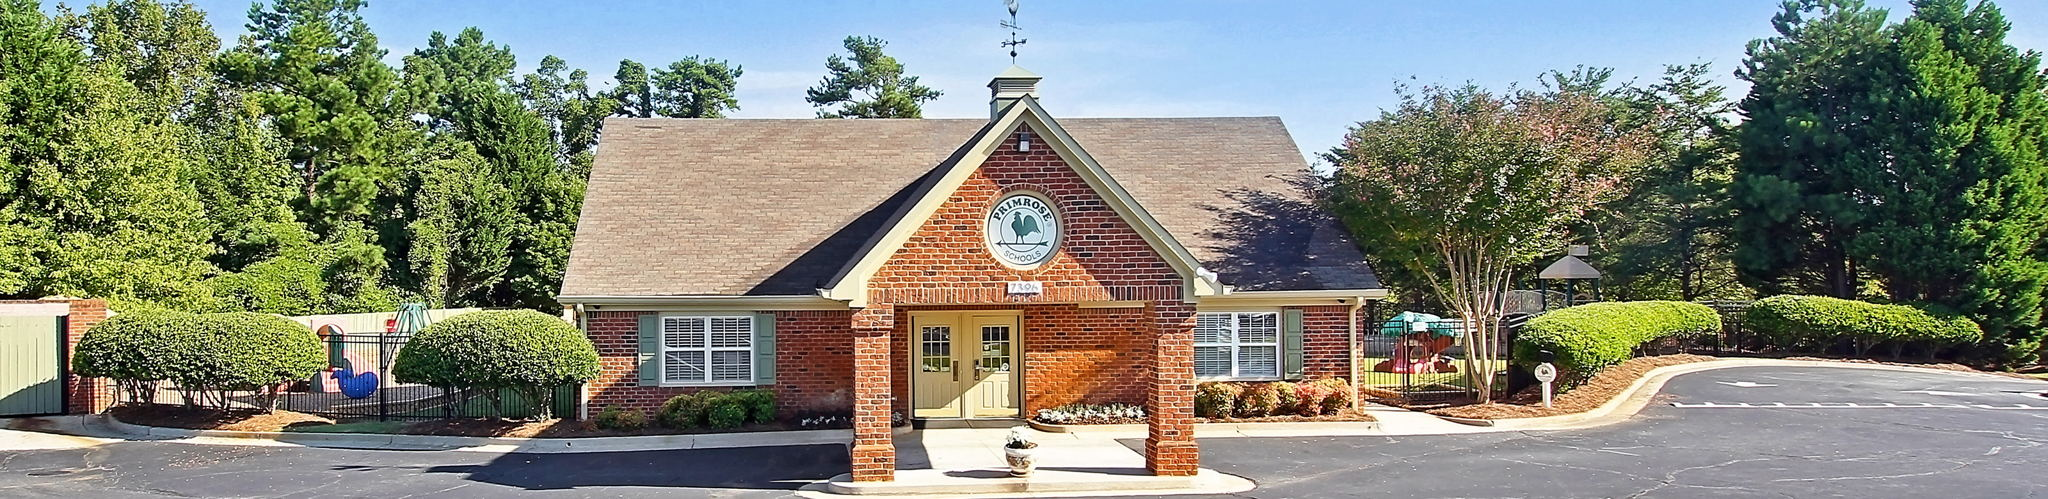 Exterior of a Primrose School of Johns Creek